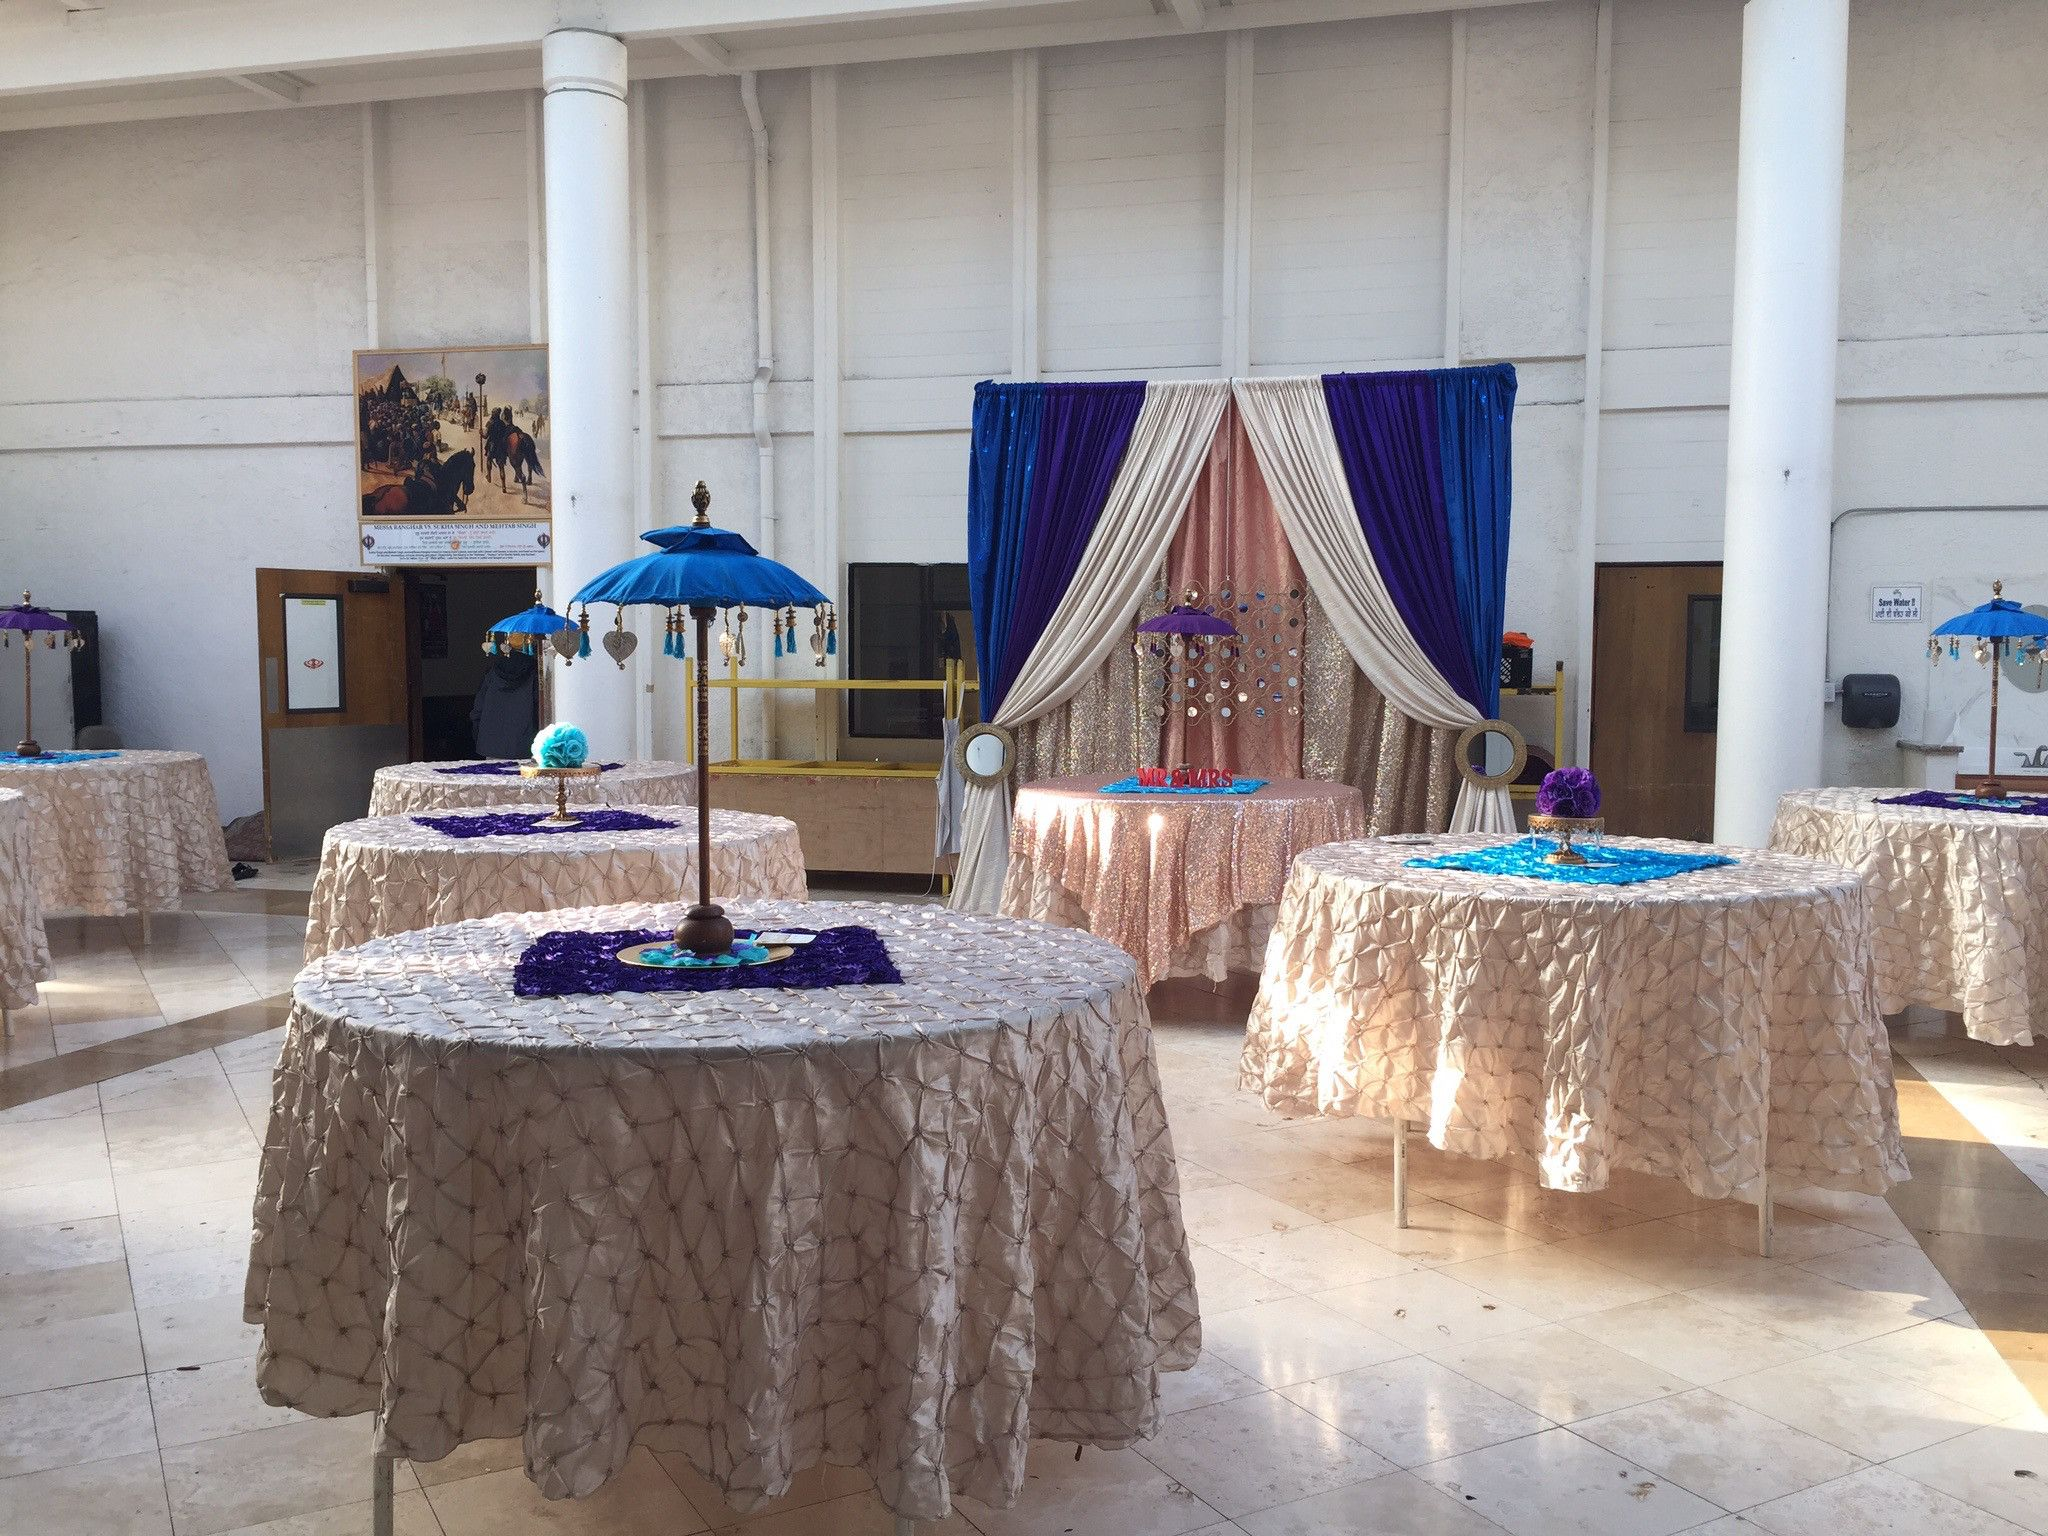 Rr event rentals bay area indian wedding decorations wedding rr event rentals bay area indian wedding decorations junglespirit Image collections